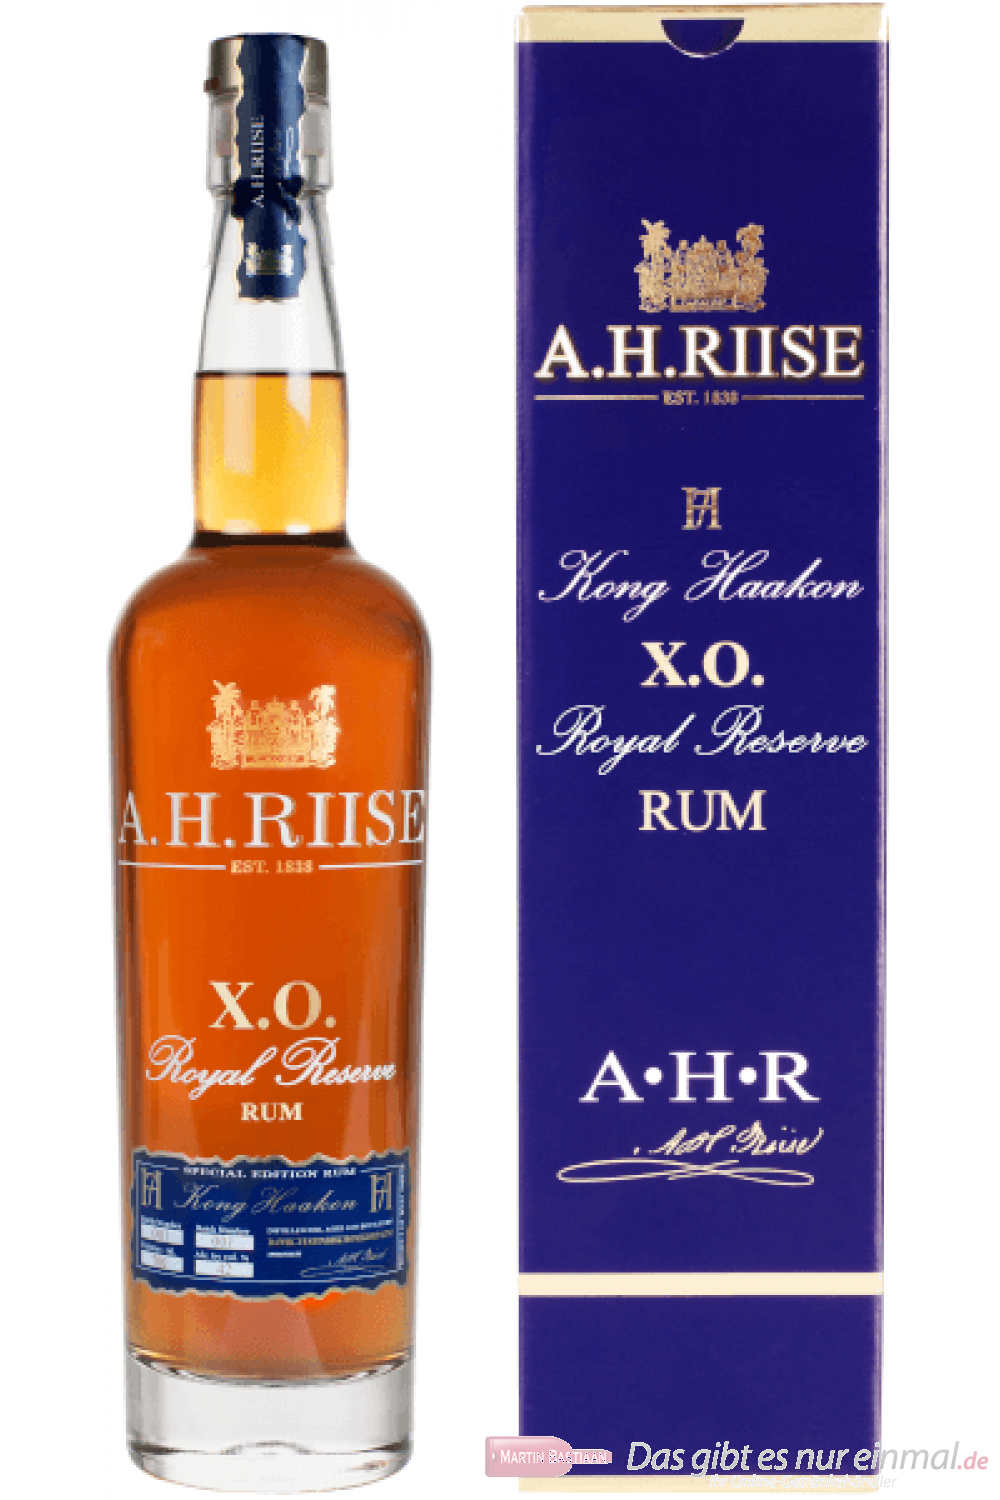 A. H. Riise X.O. Reserve Kong Haakon Rum 0,7l